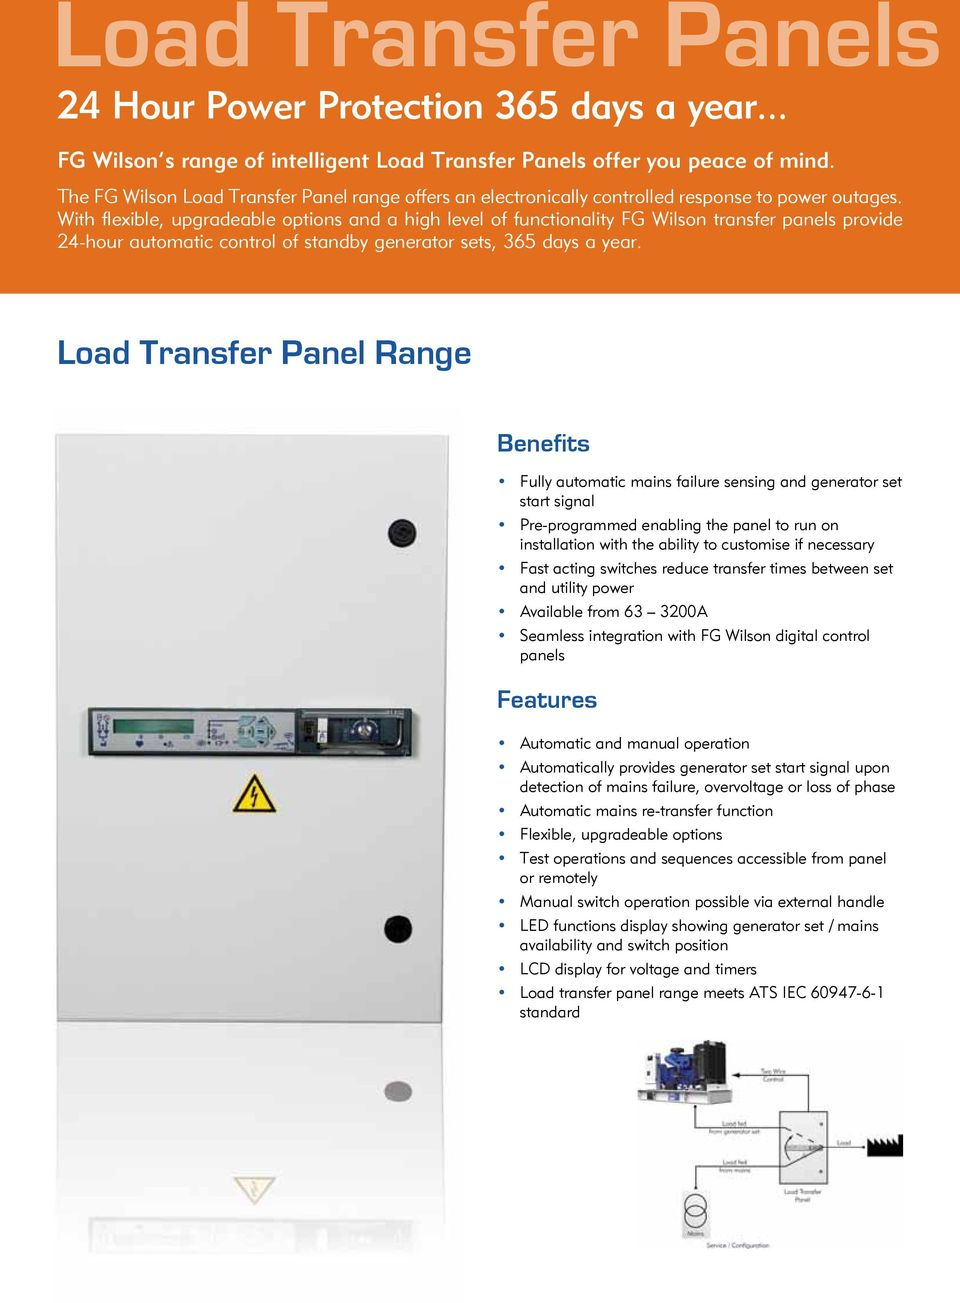 With flexible, upgradeable options and a high level of functionality FG  Wilson transfer panels provide